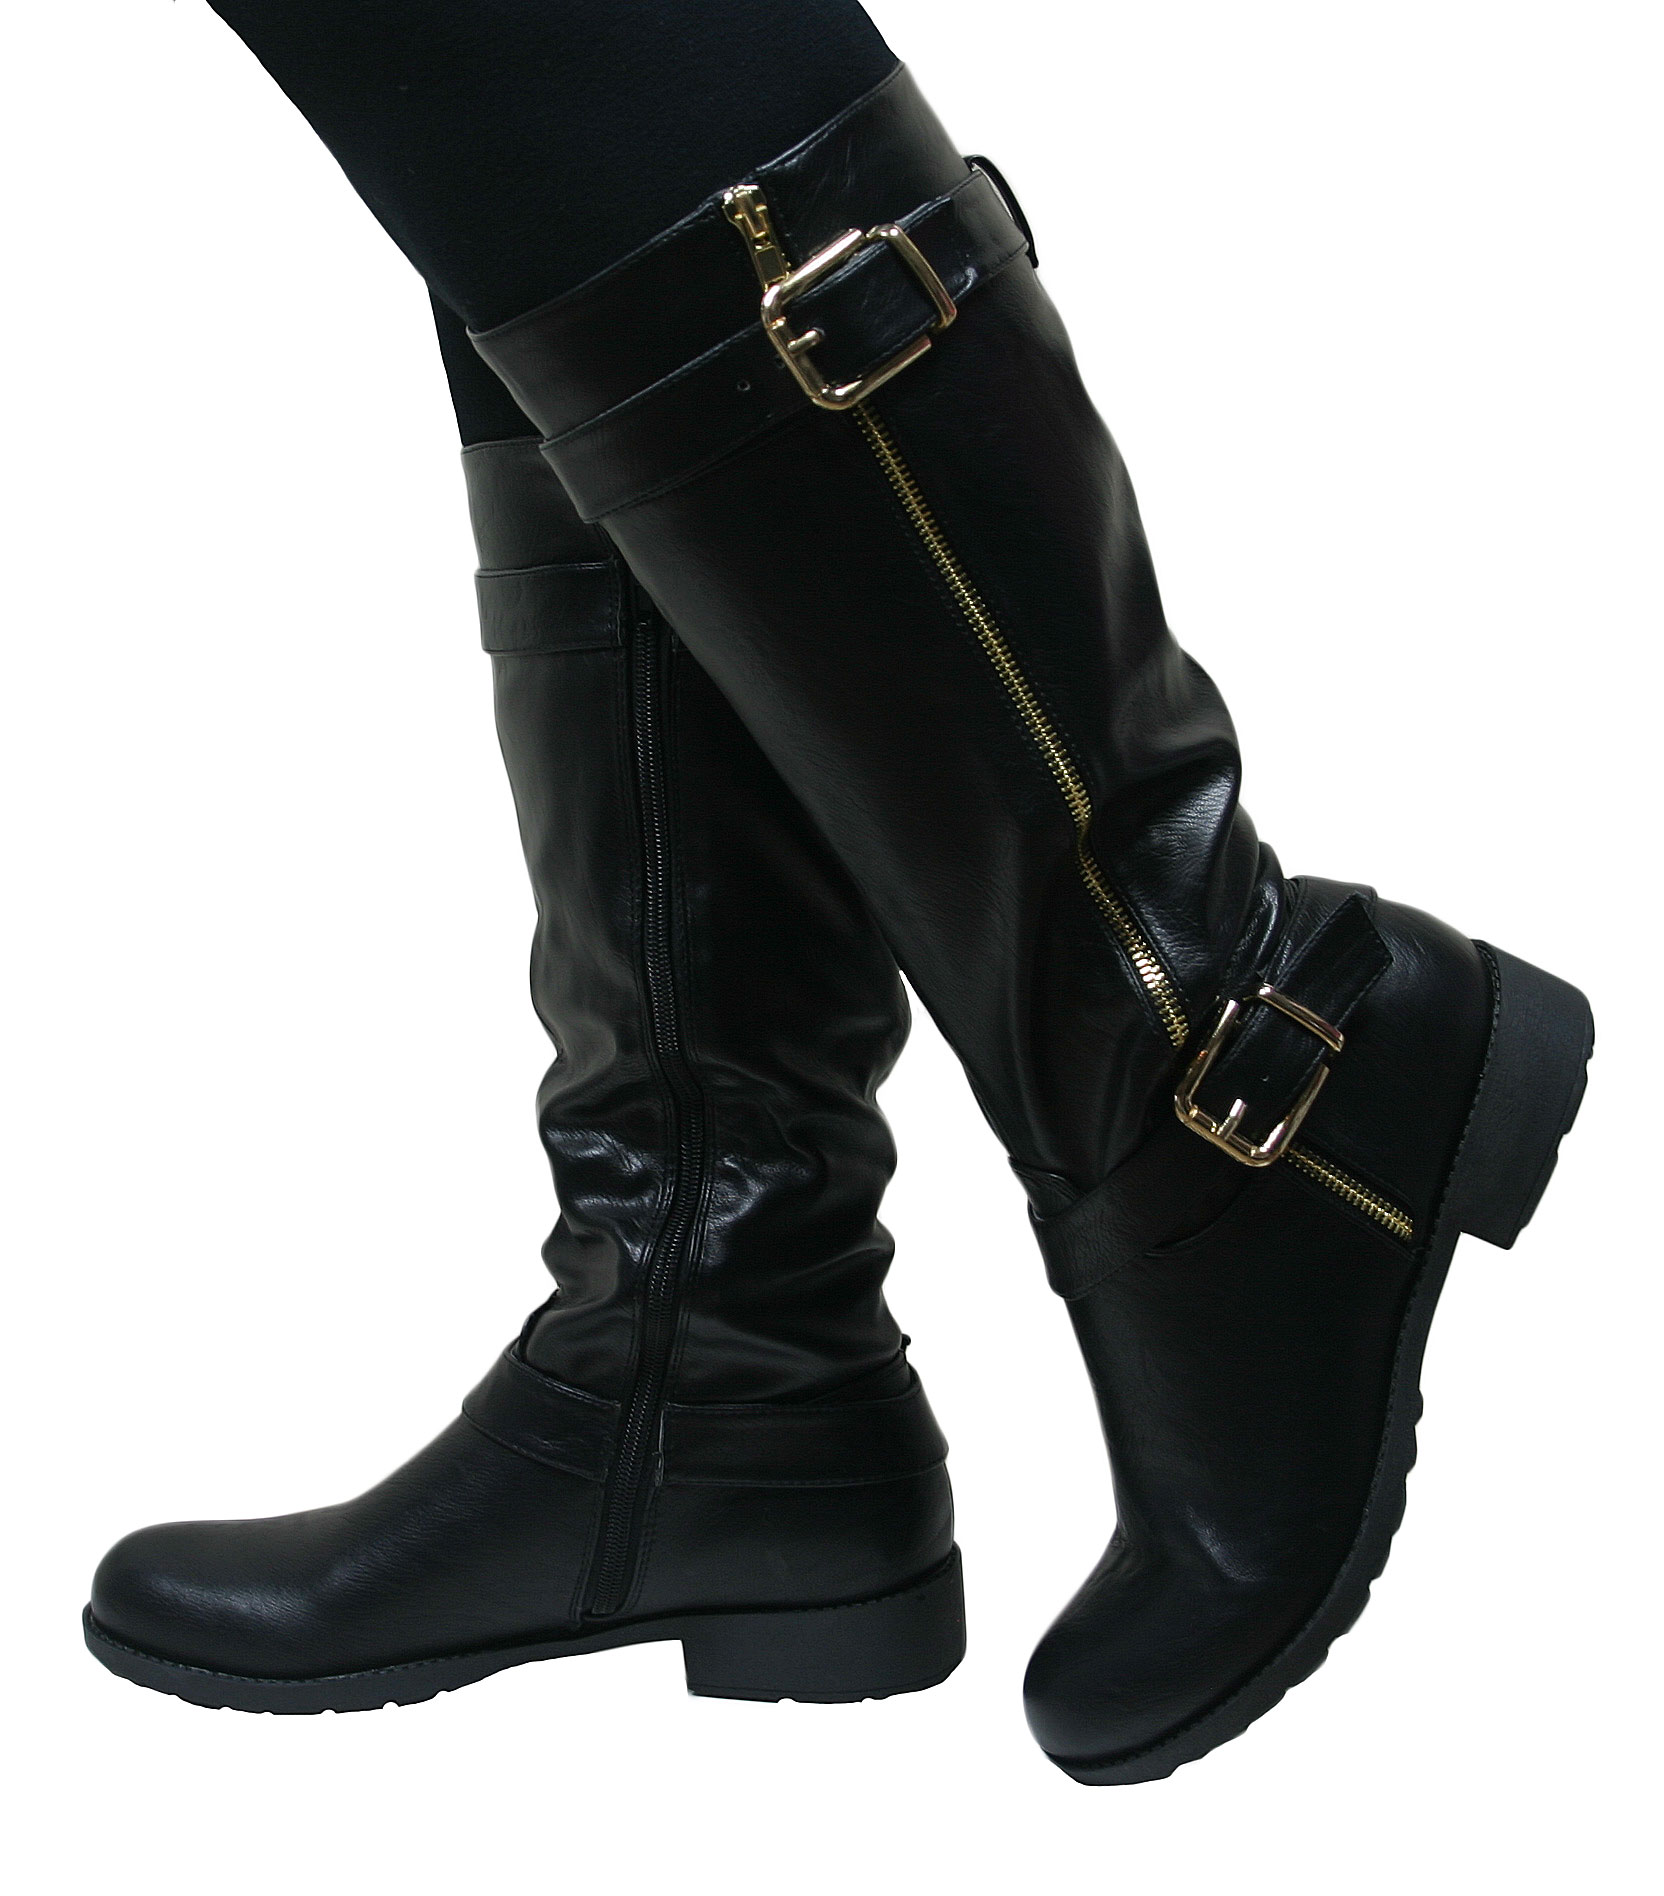 Low Heel Womens Motorcycle Boots Online Boots